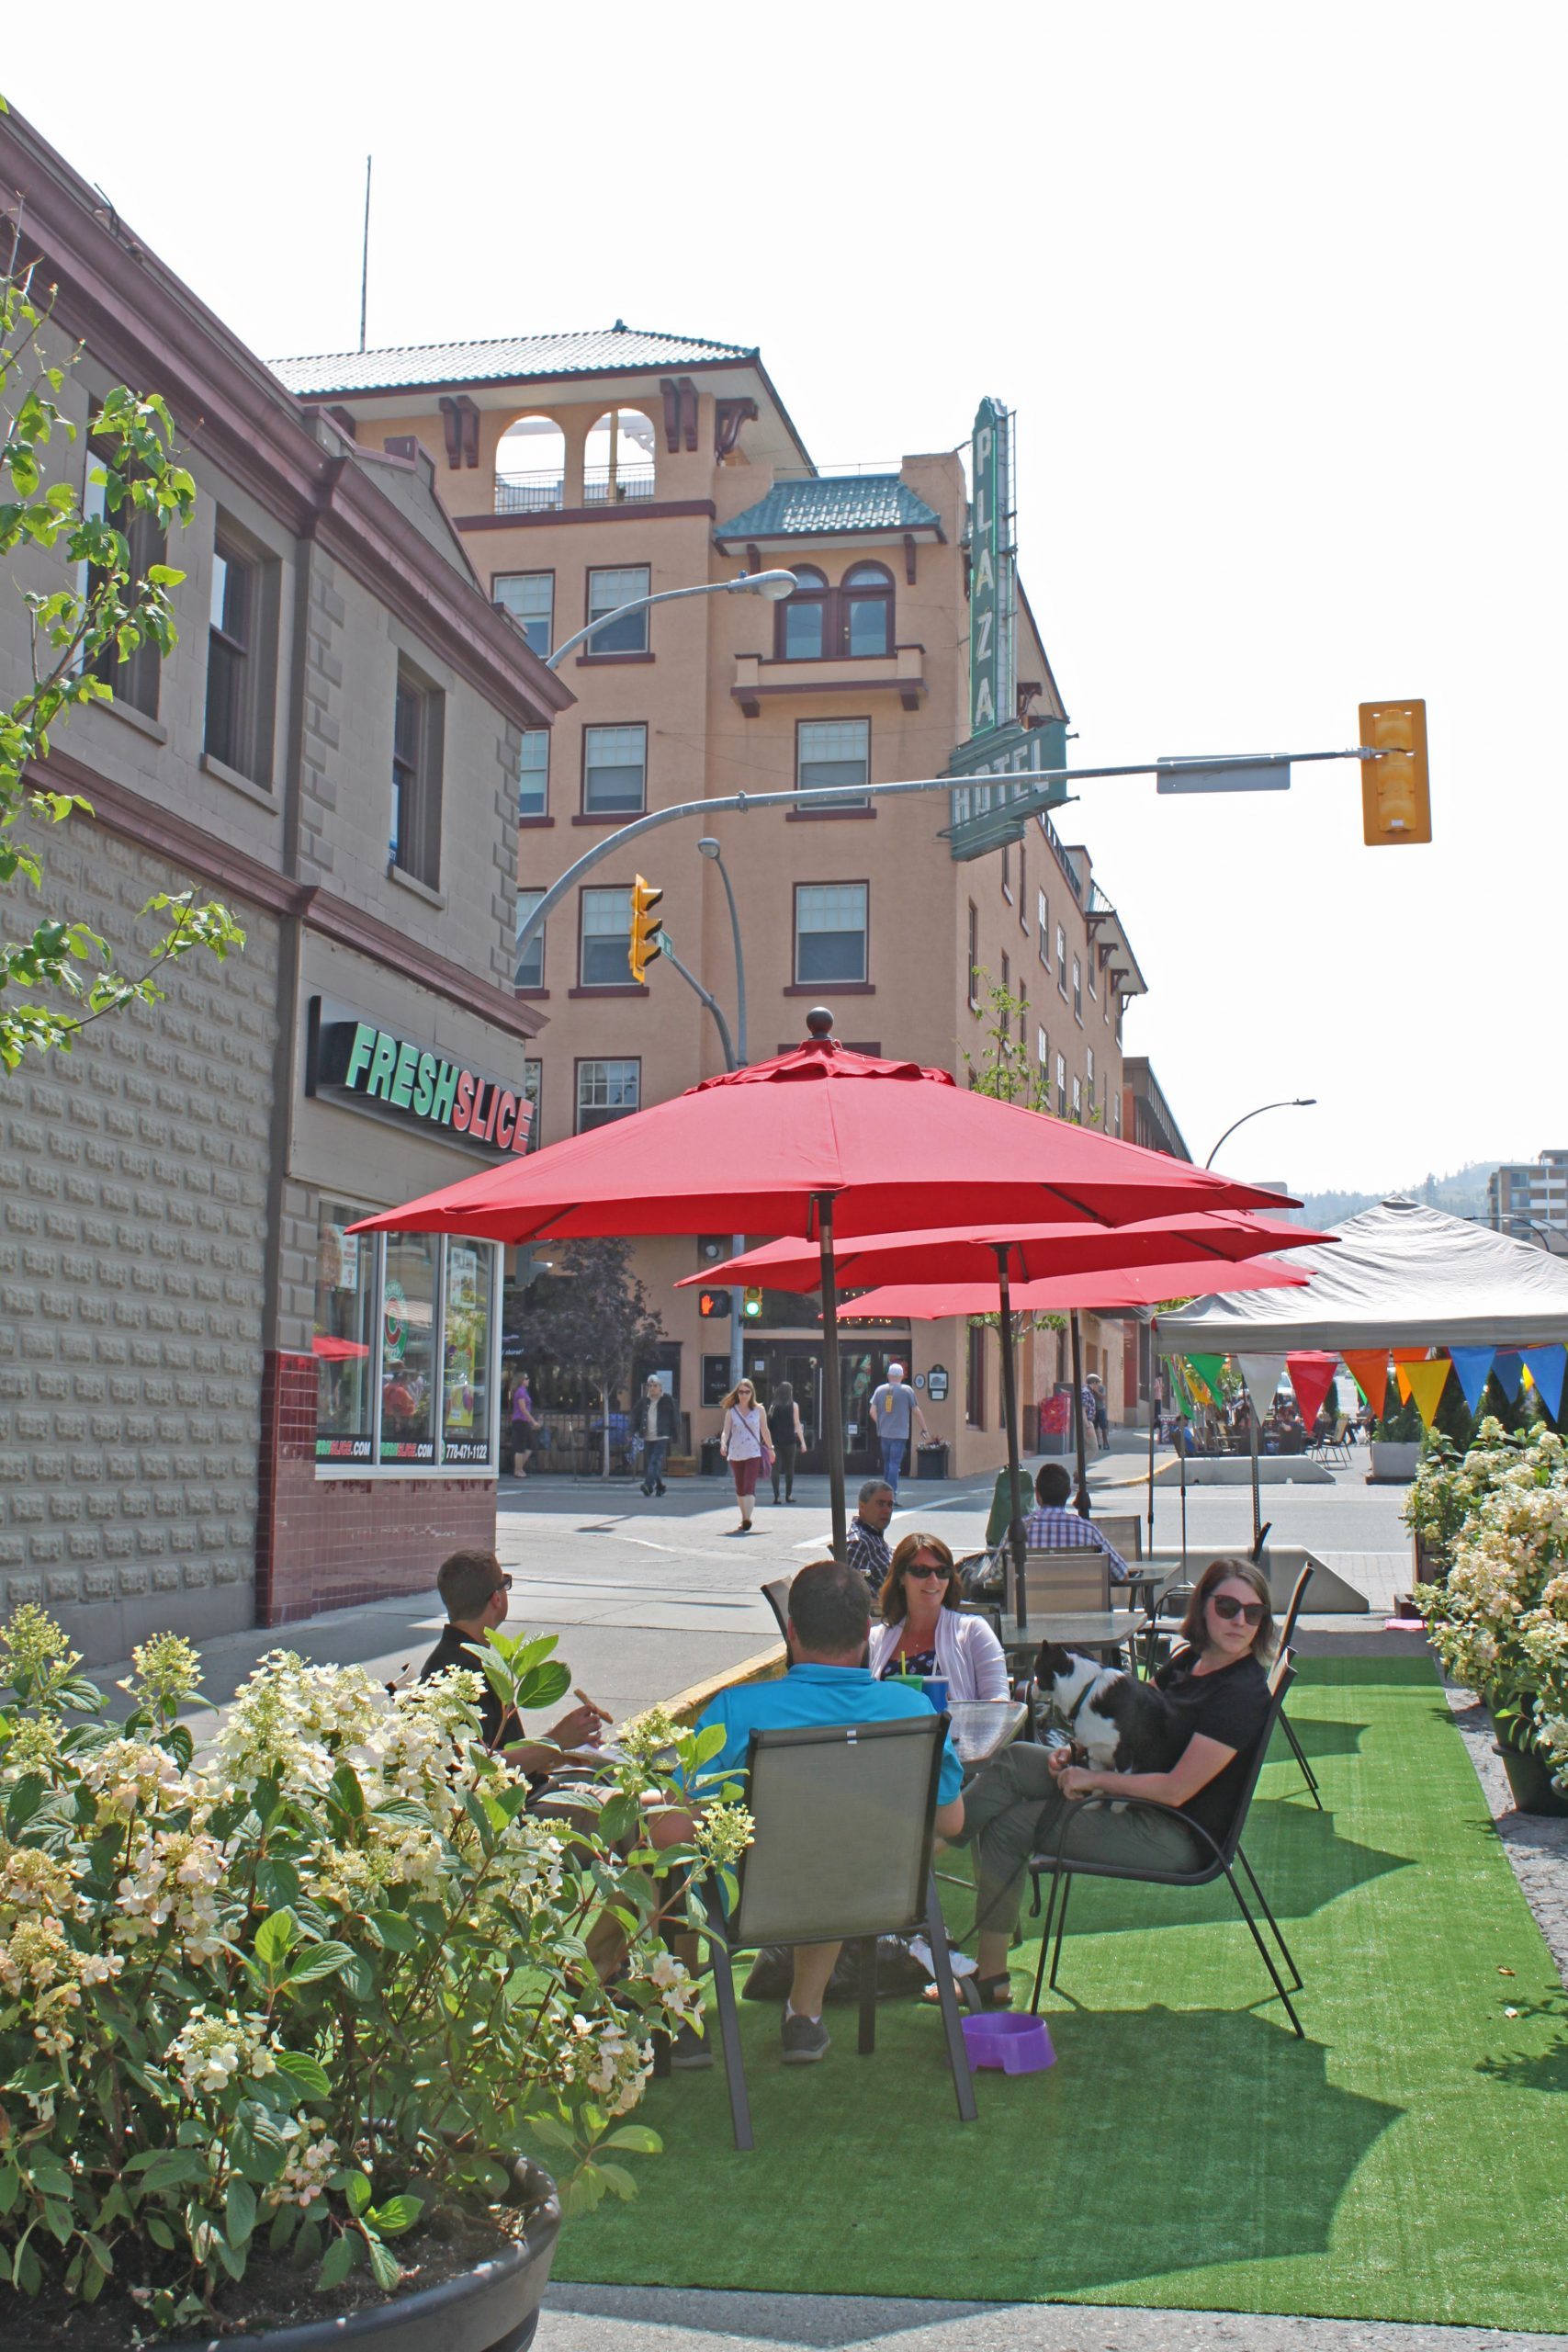 Positive response to 4th Avenue Pedestrian Plaza pilot project in Kamloops